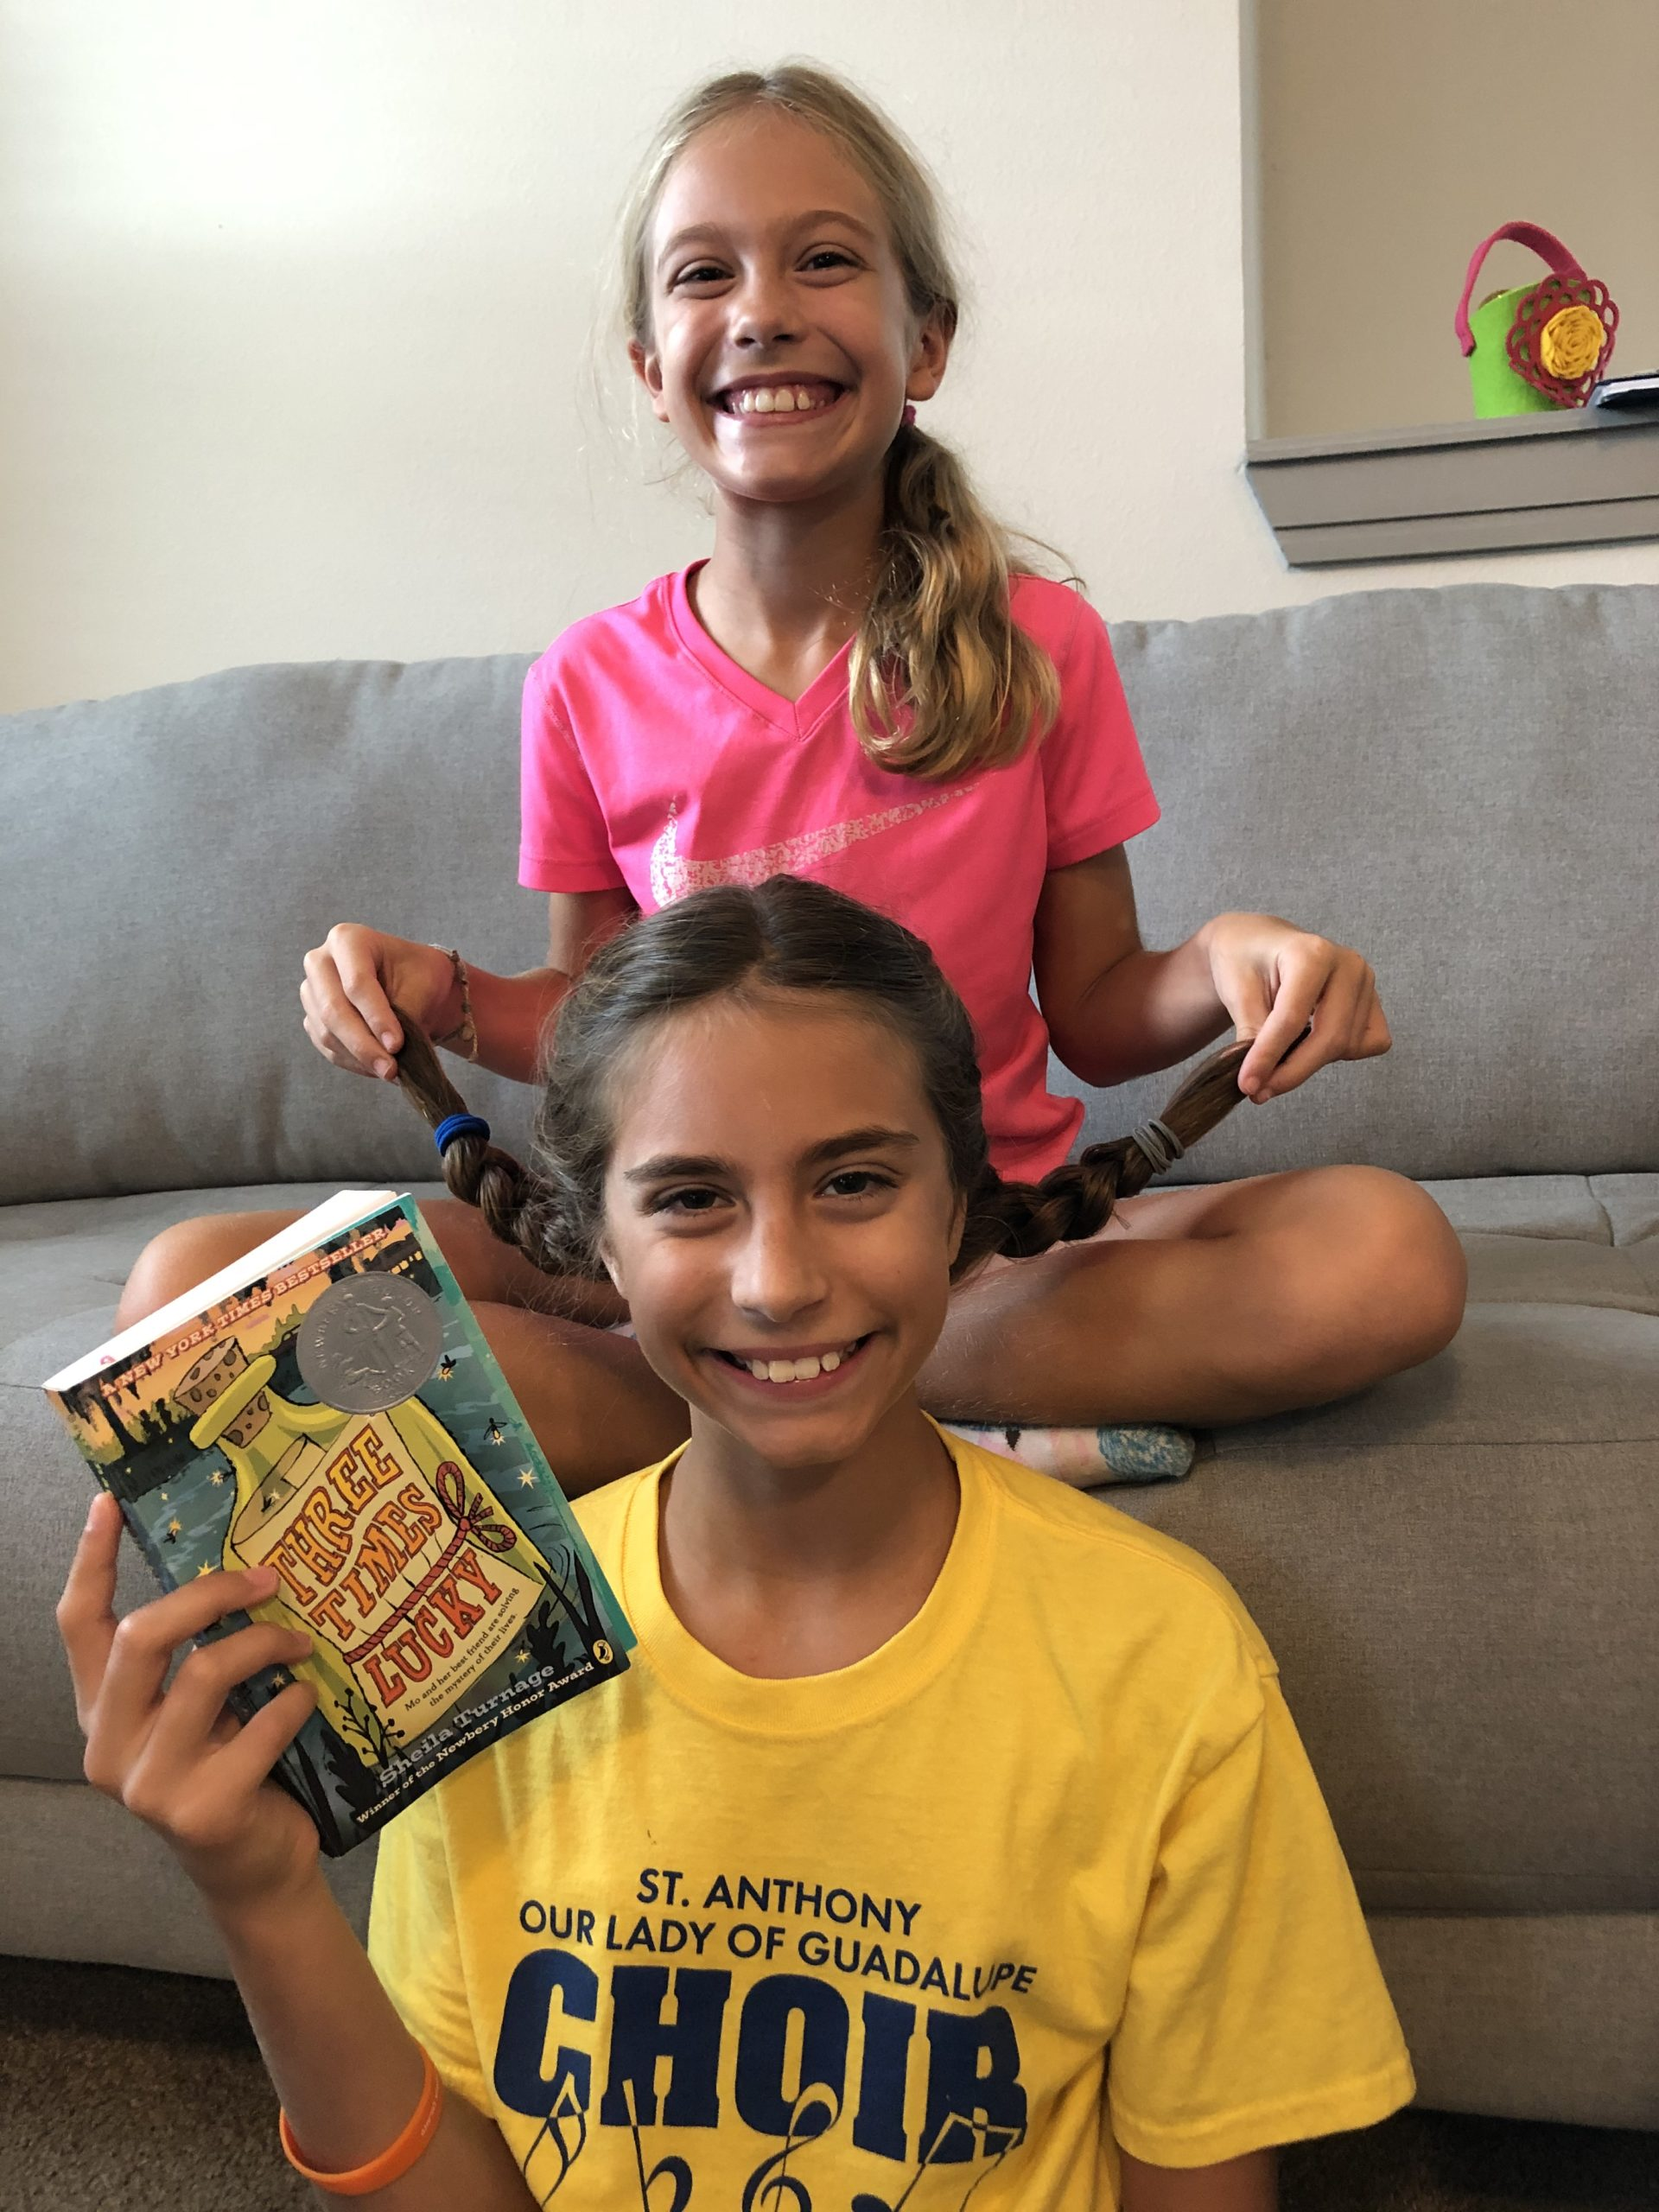 2 kids, girls, holding up the Three Times Lucky book, smiling at the camera.